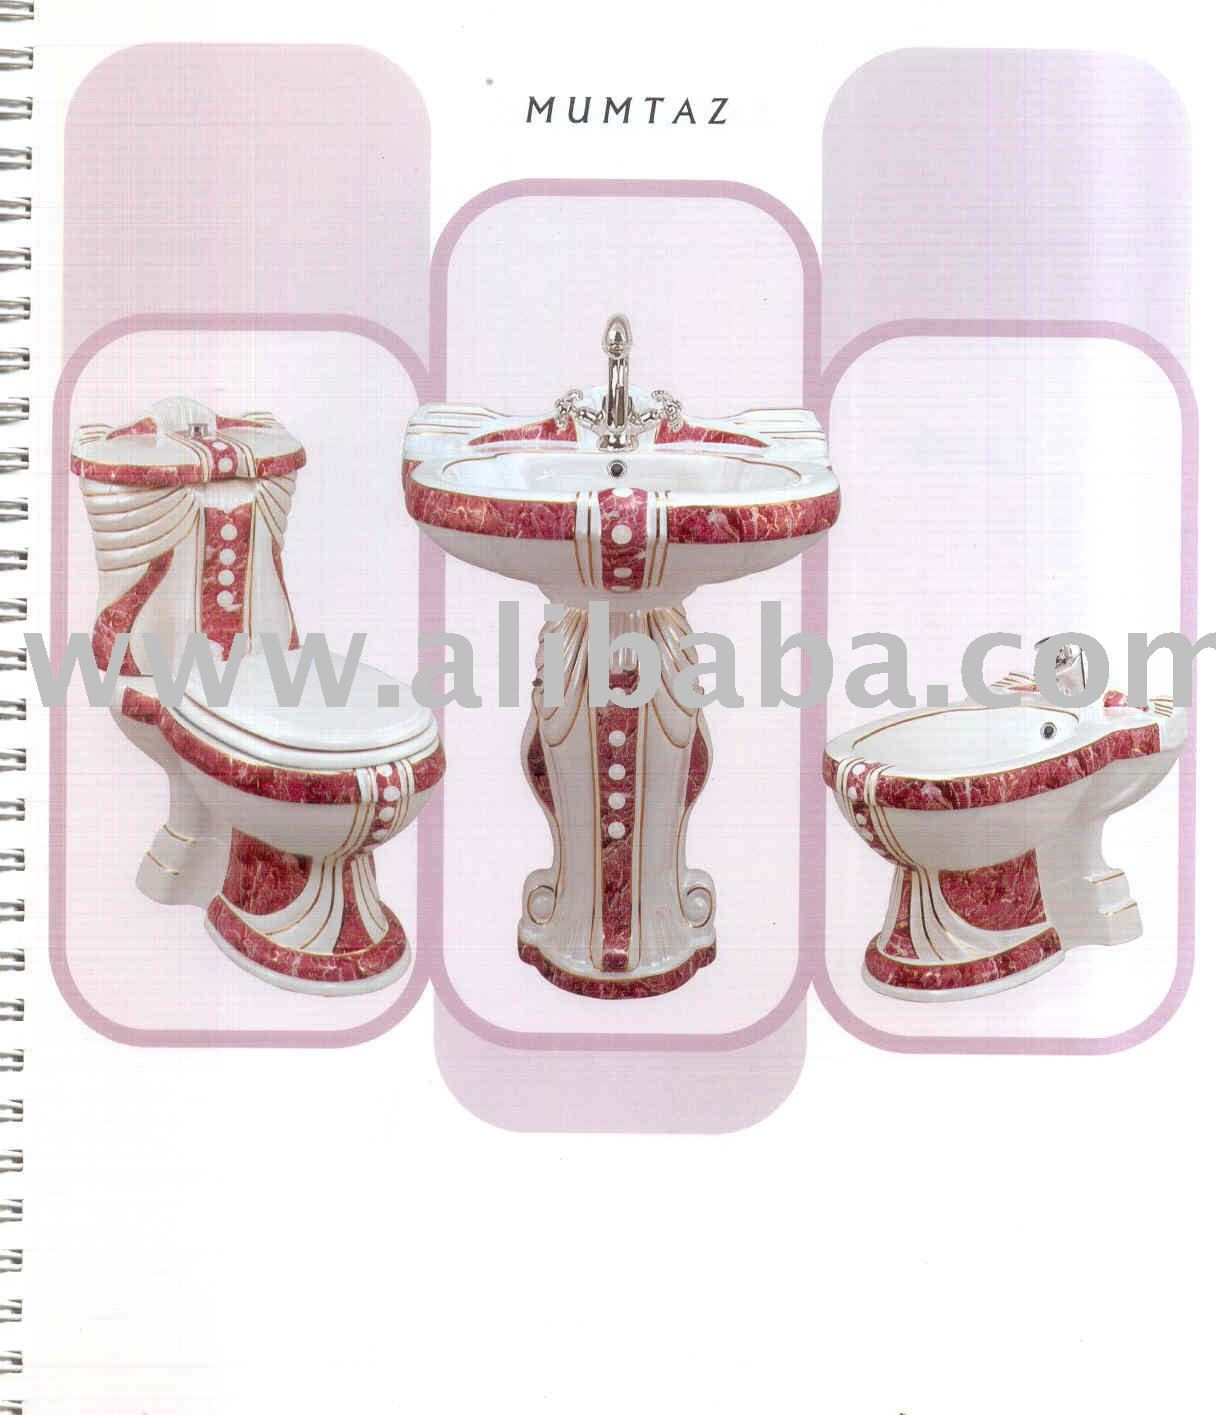 MUMTAZ CERAMIC DECORATED SET